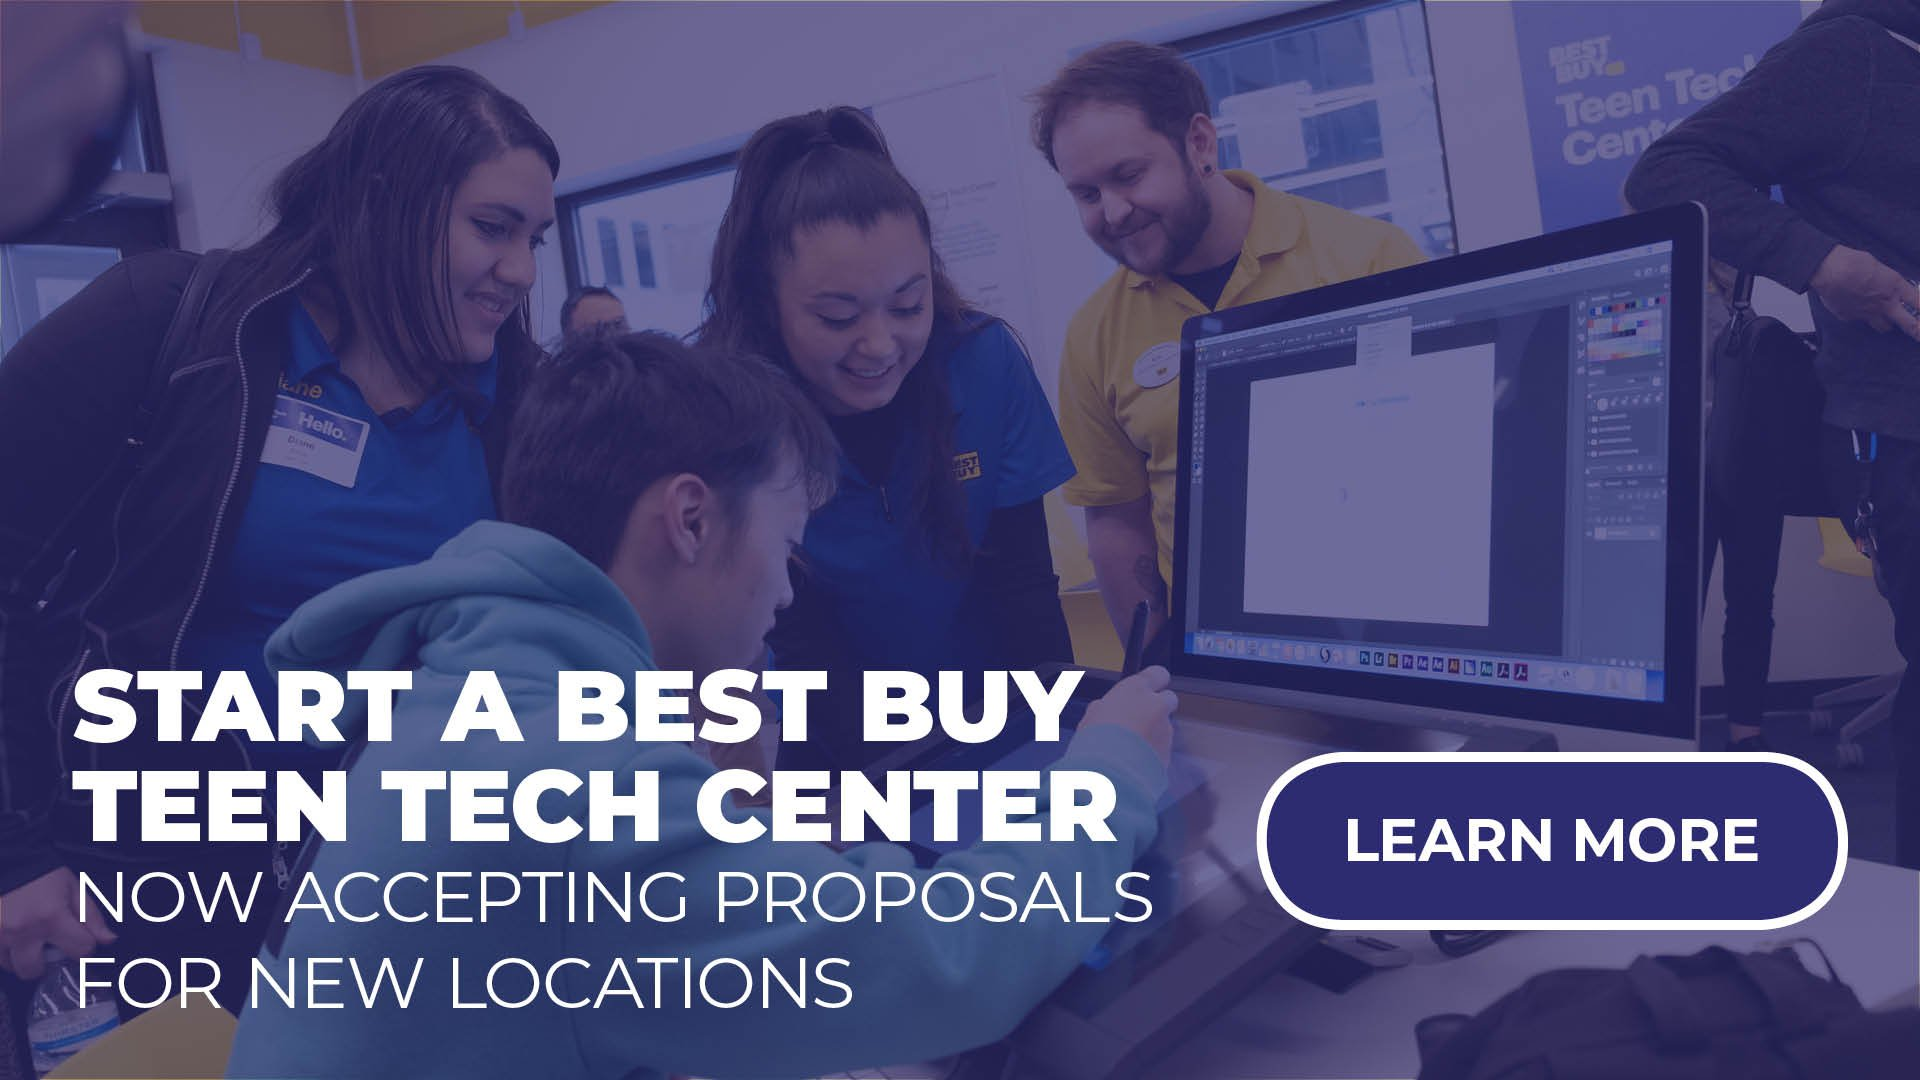 Start a Best Buy Teen Tech Center